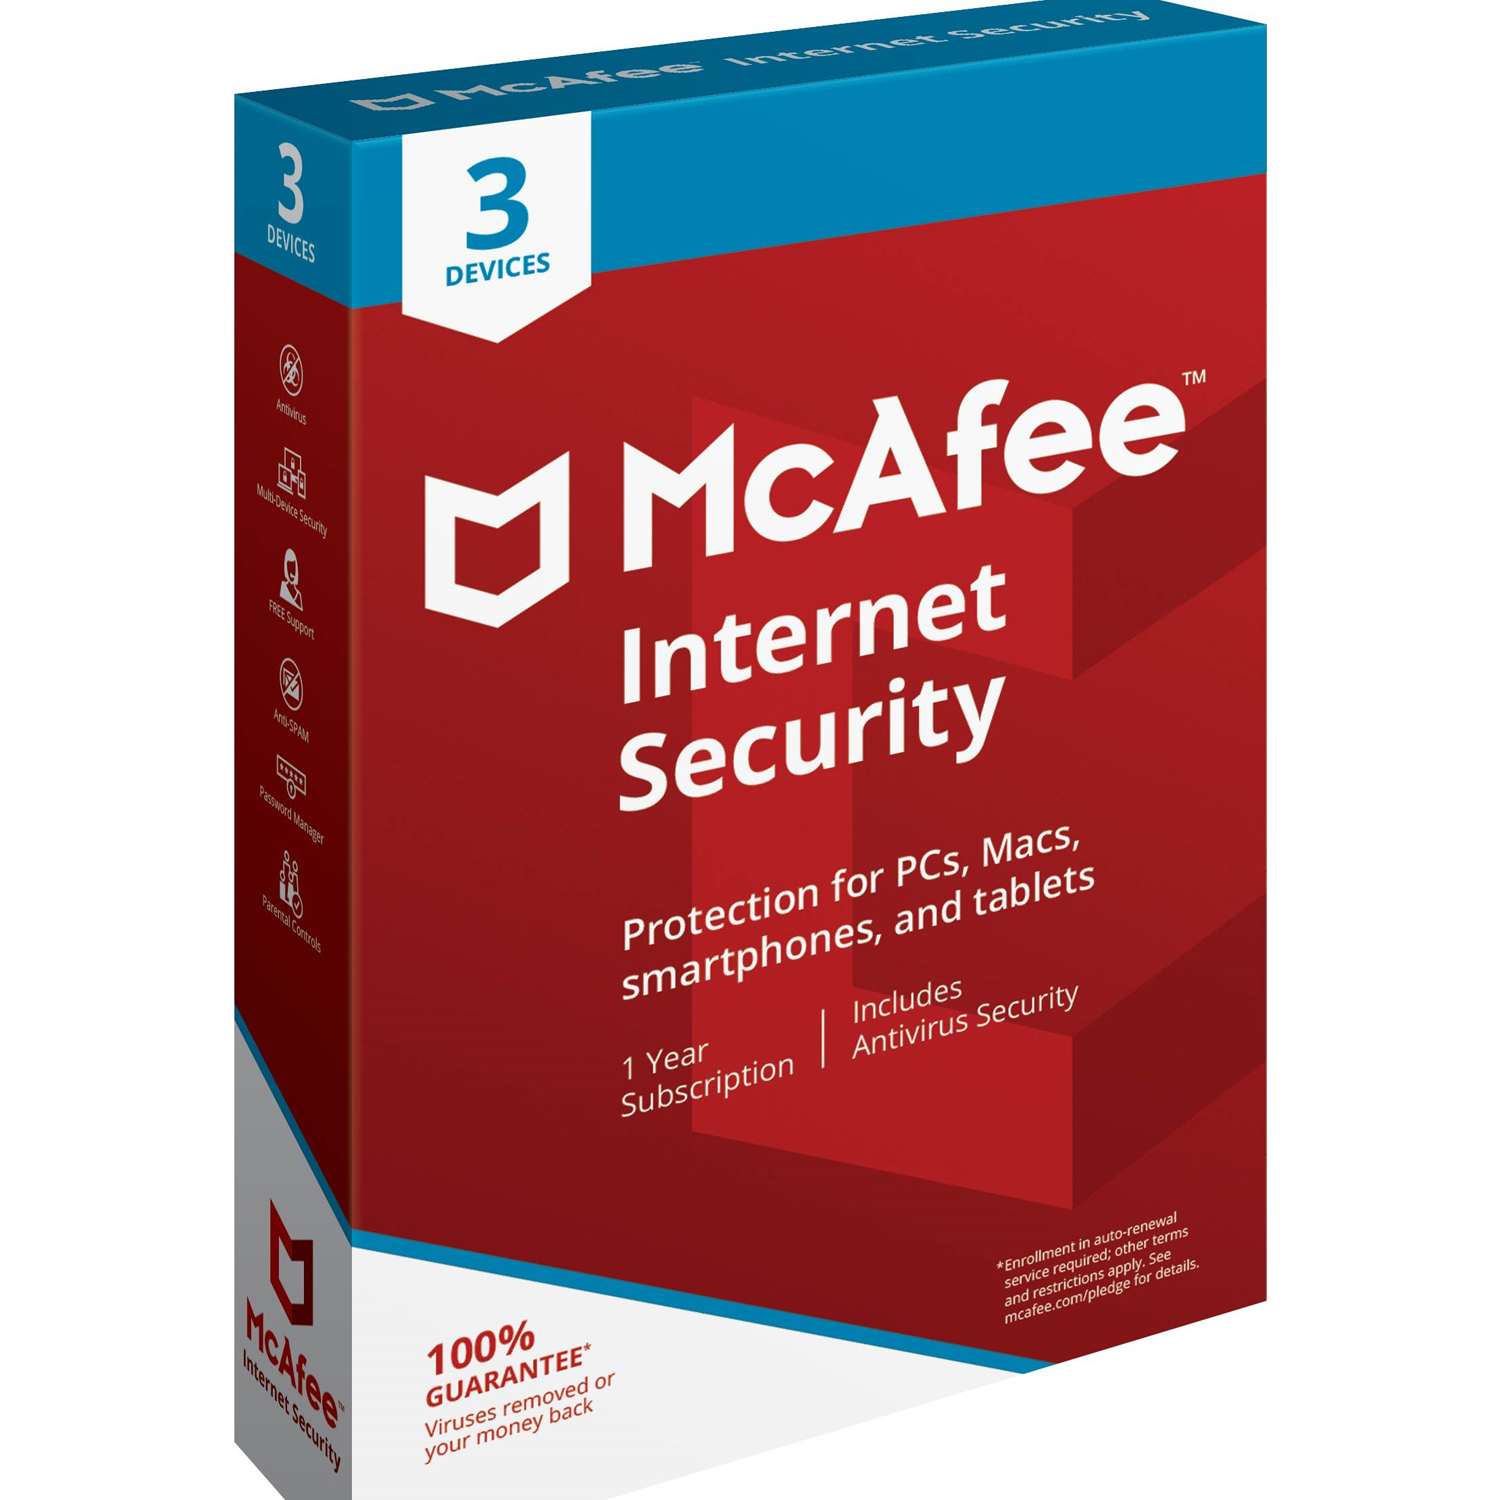 McAfee Internet Security 3 Device